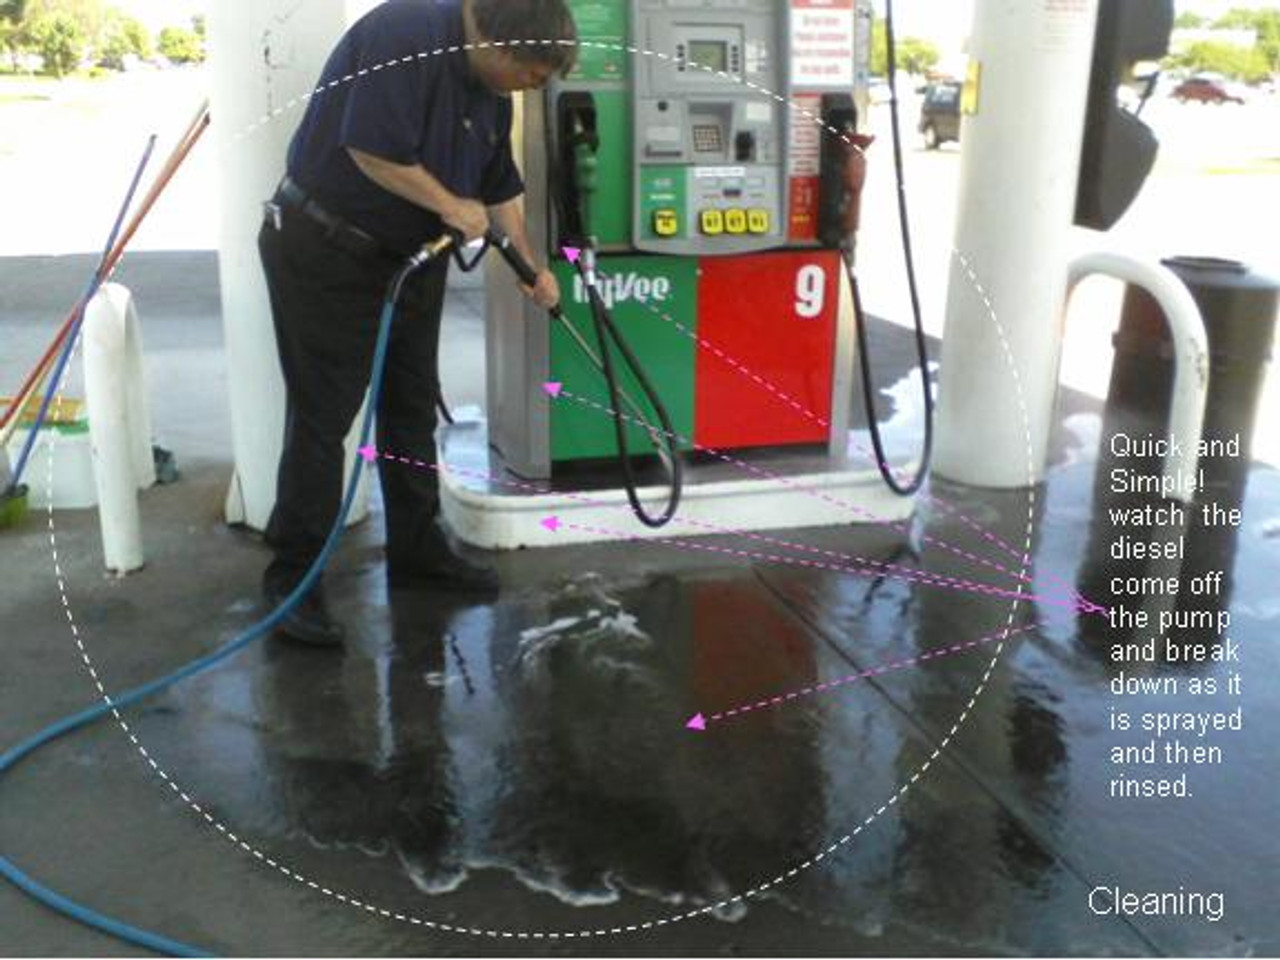 SealGreen Oil Cleaner Degreaser is frist applied to pump and then rinse with hose or pressure washer